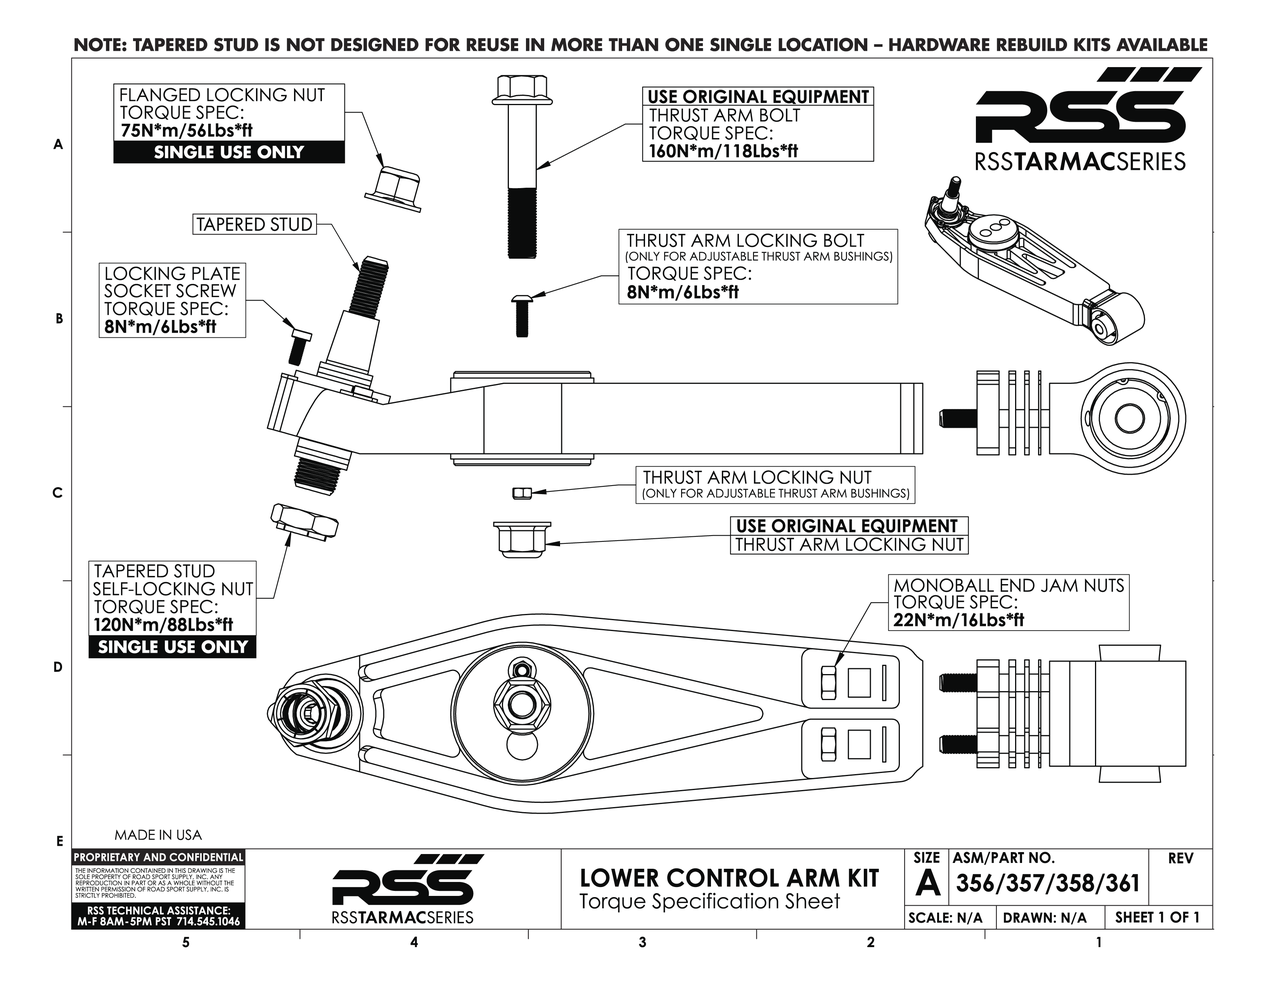 RSS Part # 362 integrates the optional Litronic or Adaptive Headlamp systems with the Tarmac Series Lower Control Arms or OE 2pc Arms on 986 Front and Rear, 987 front (987 Rear See #364), 997 front and rear, 981 front axle ( 981 Rear See # 387), 991 Front (Except for GT3/RS). Adapter Bracket for RSS Tarmac Series Rear Lower Control Arm. - 1 Per Car Axle (Located on front and rear drivers side axle, connects to OE Sensor Arm)